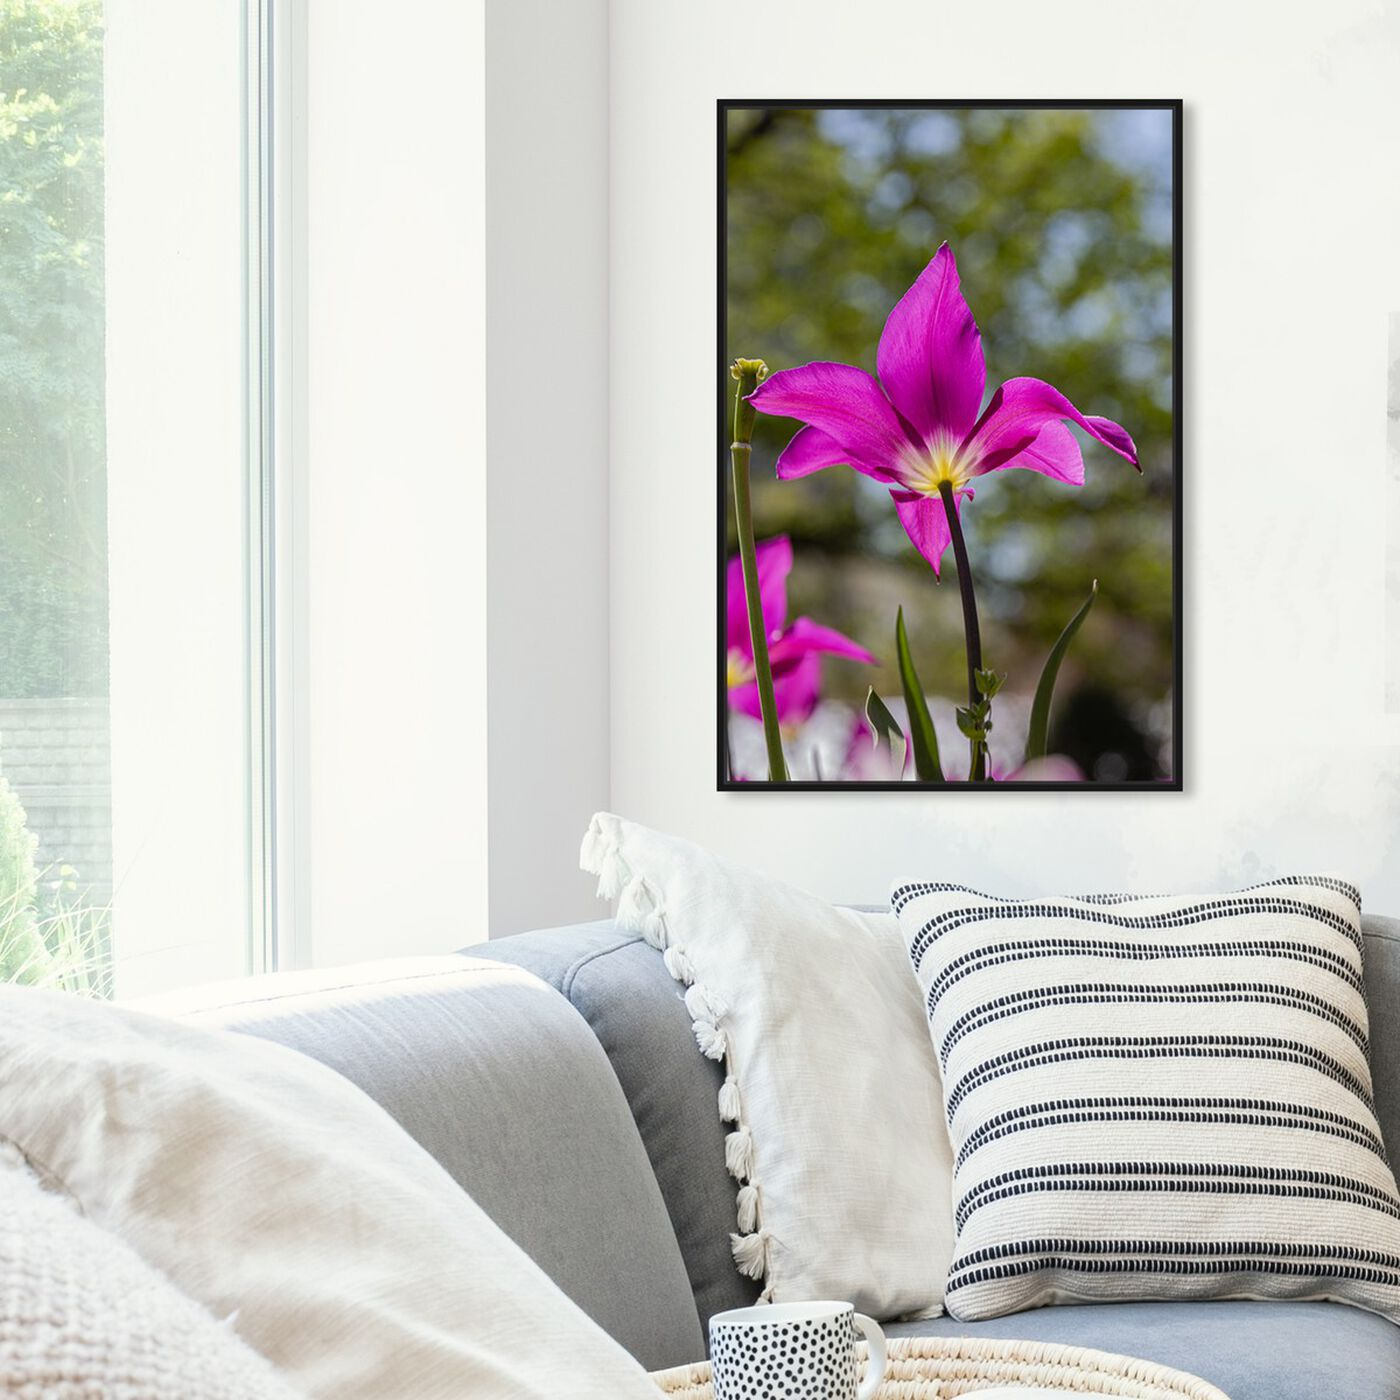 Hanging view of Curro Cardenal - Flower at the Center I featuring floral and botanical and florals art.